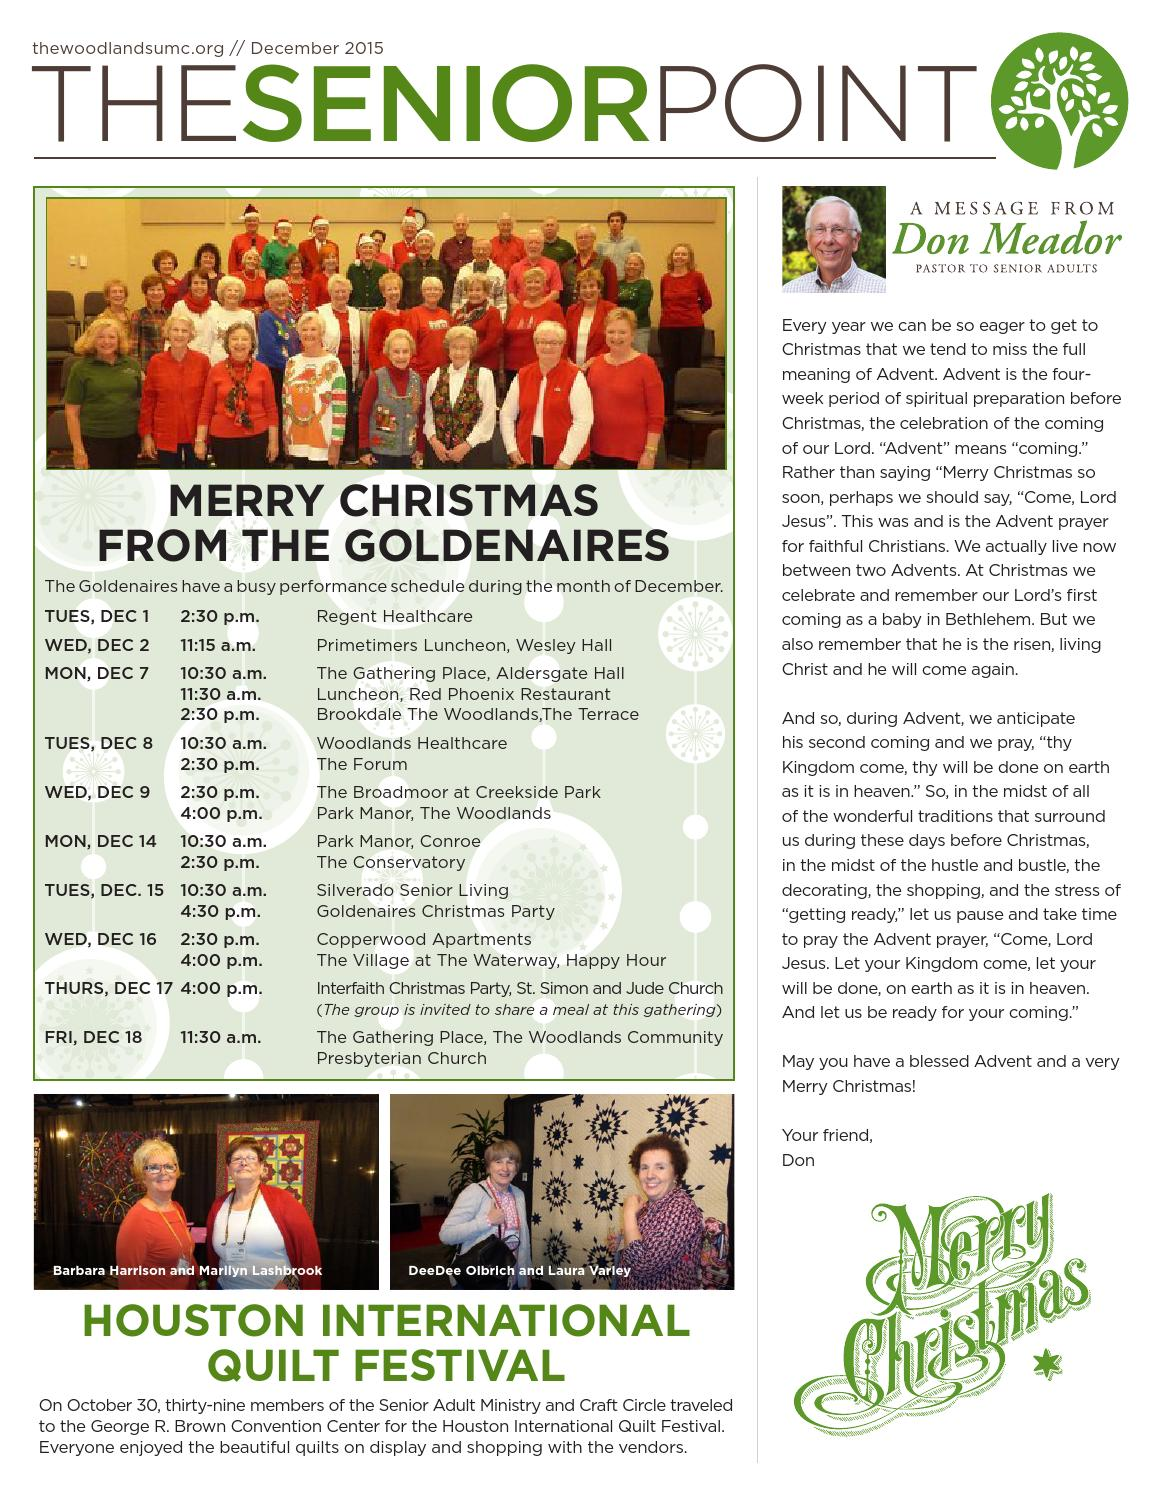 The Senior Point December 2015 By The Woodlands Umc Issuu